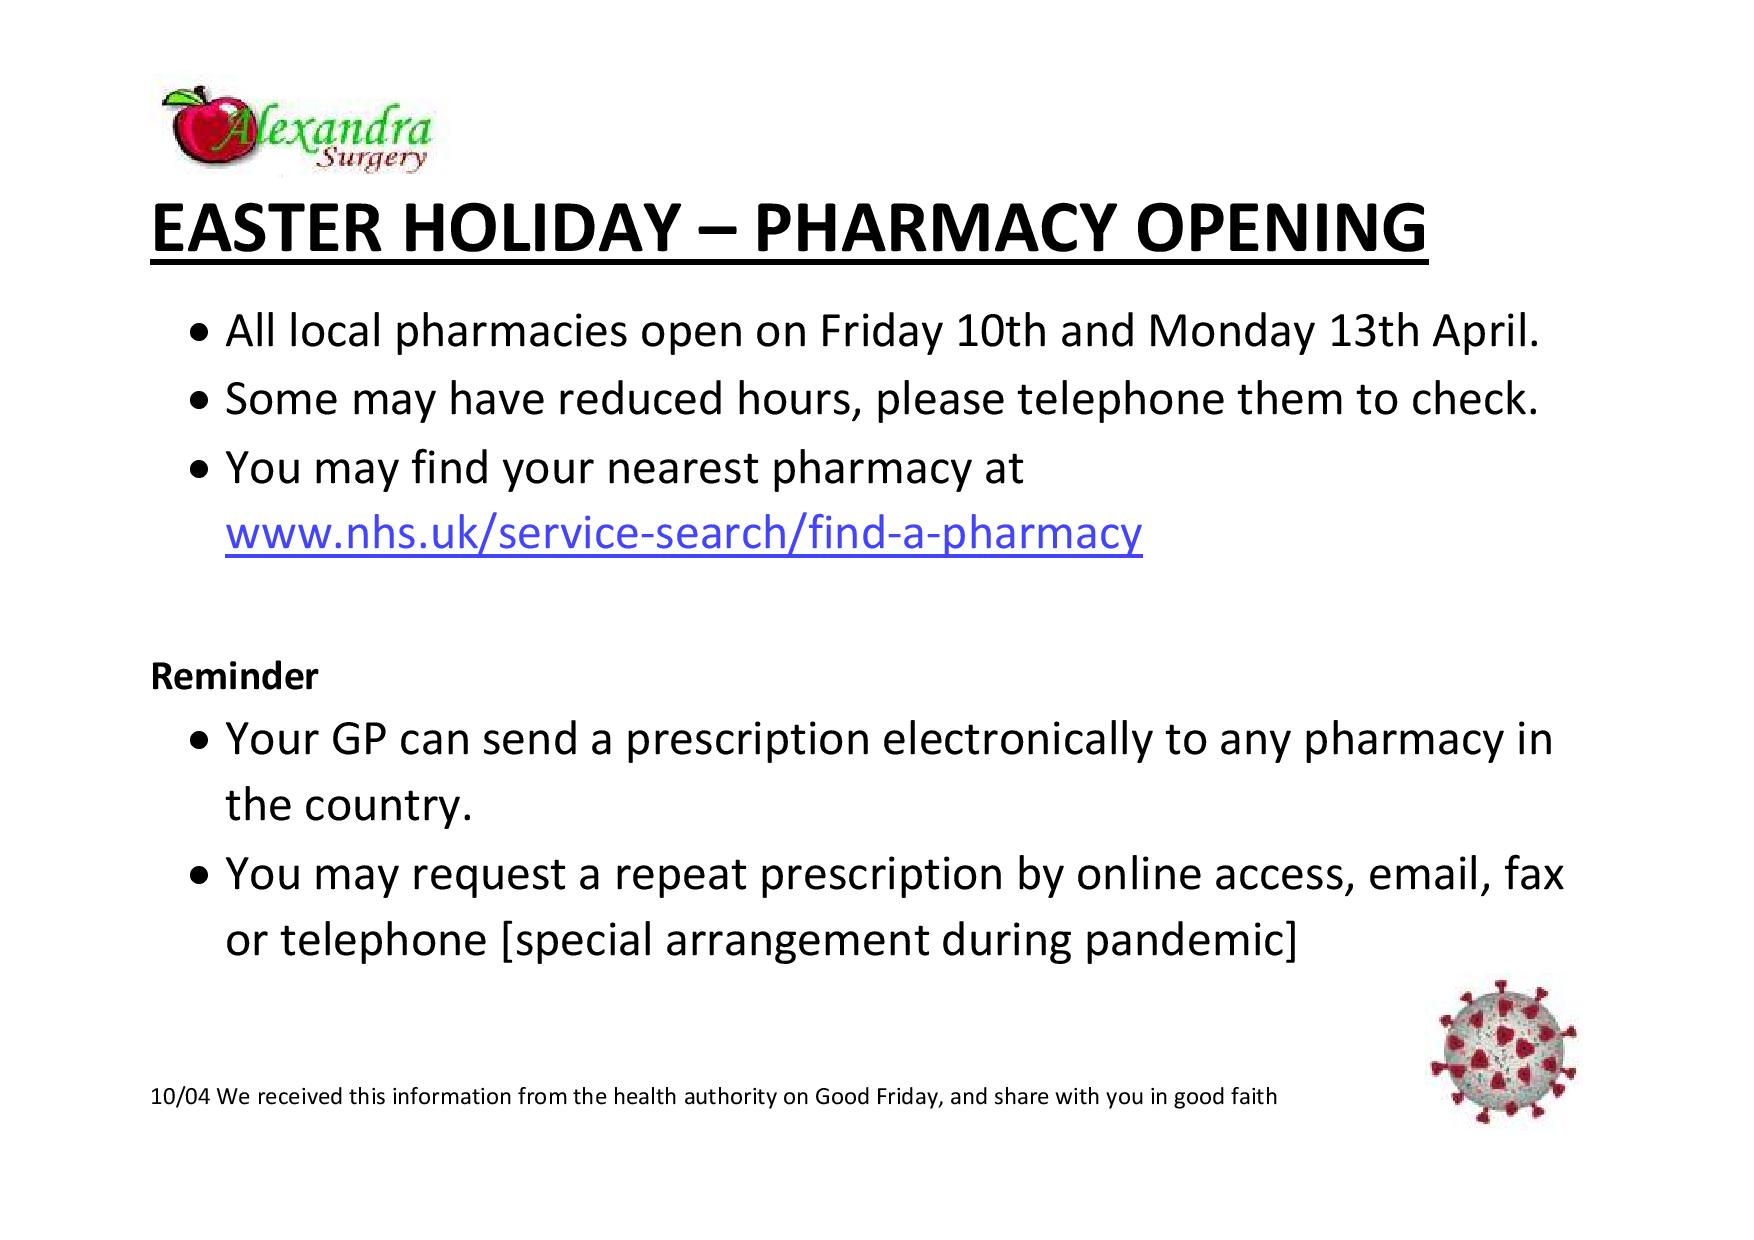 Easter pharmacy opening hours